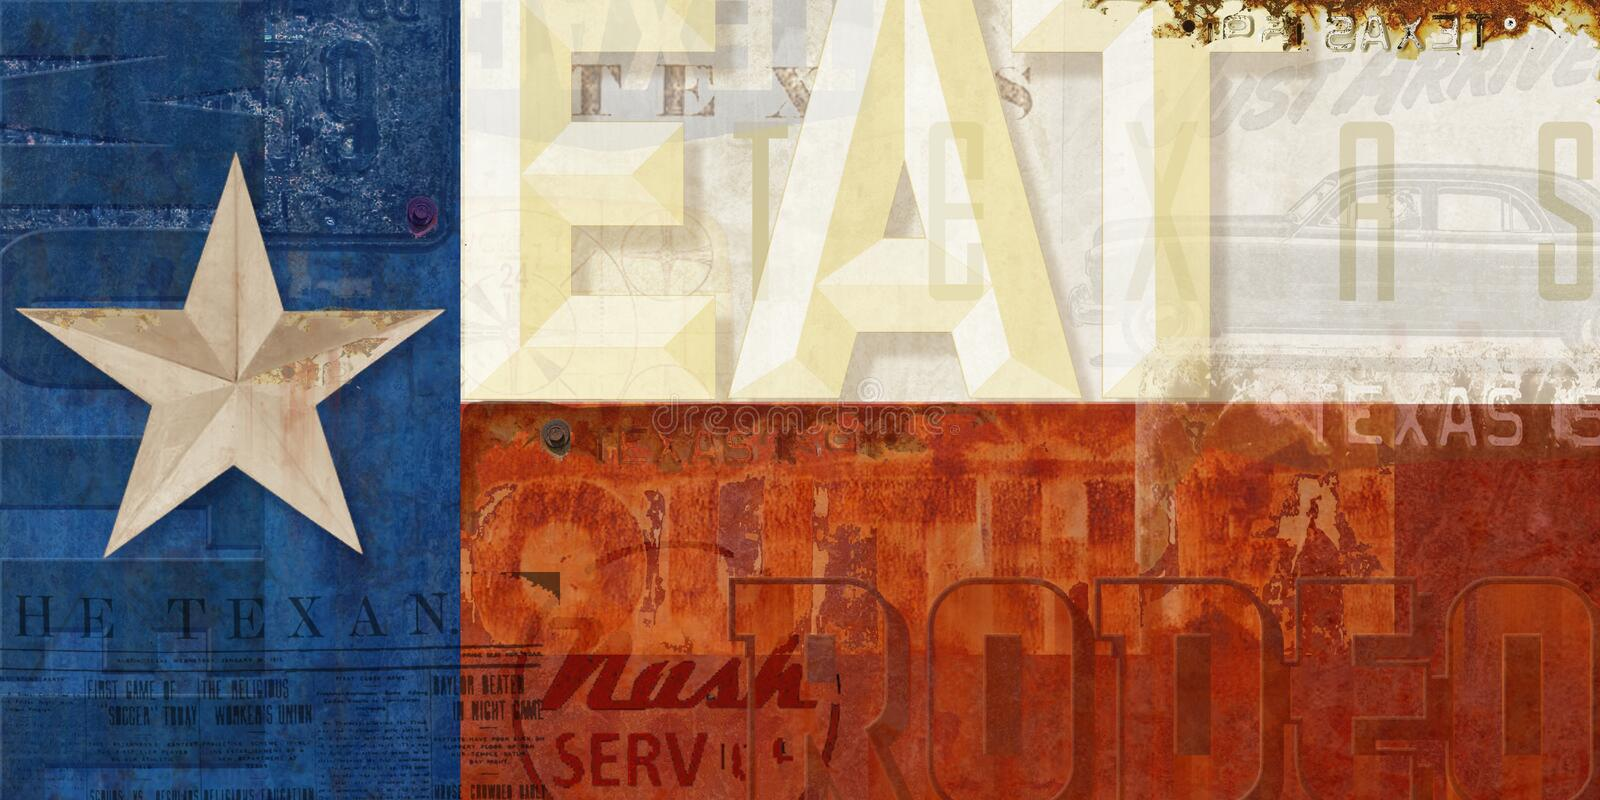 Servicio Route 66 del motel de Texas Flag Grunge Eat Rodeo ilustración del vector